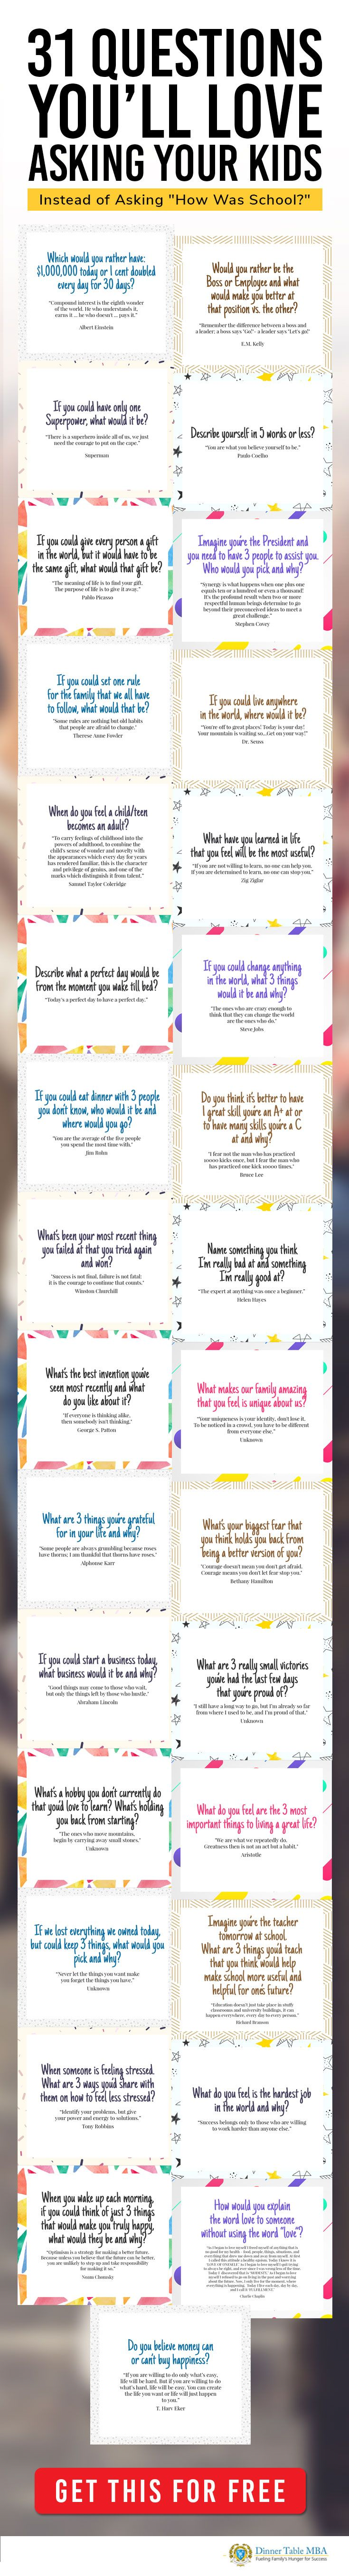 Questions for Kids: 31 Questions you'll Love Asking Your ...